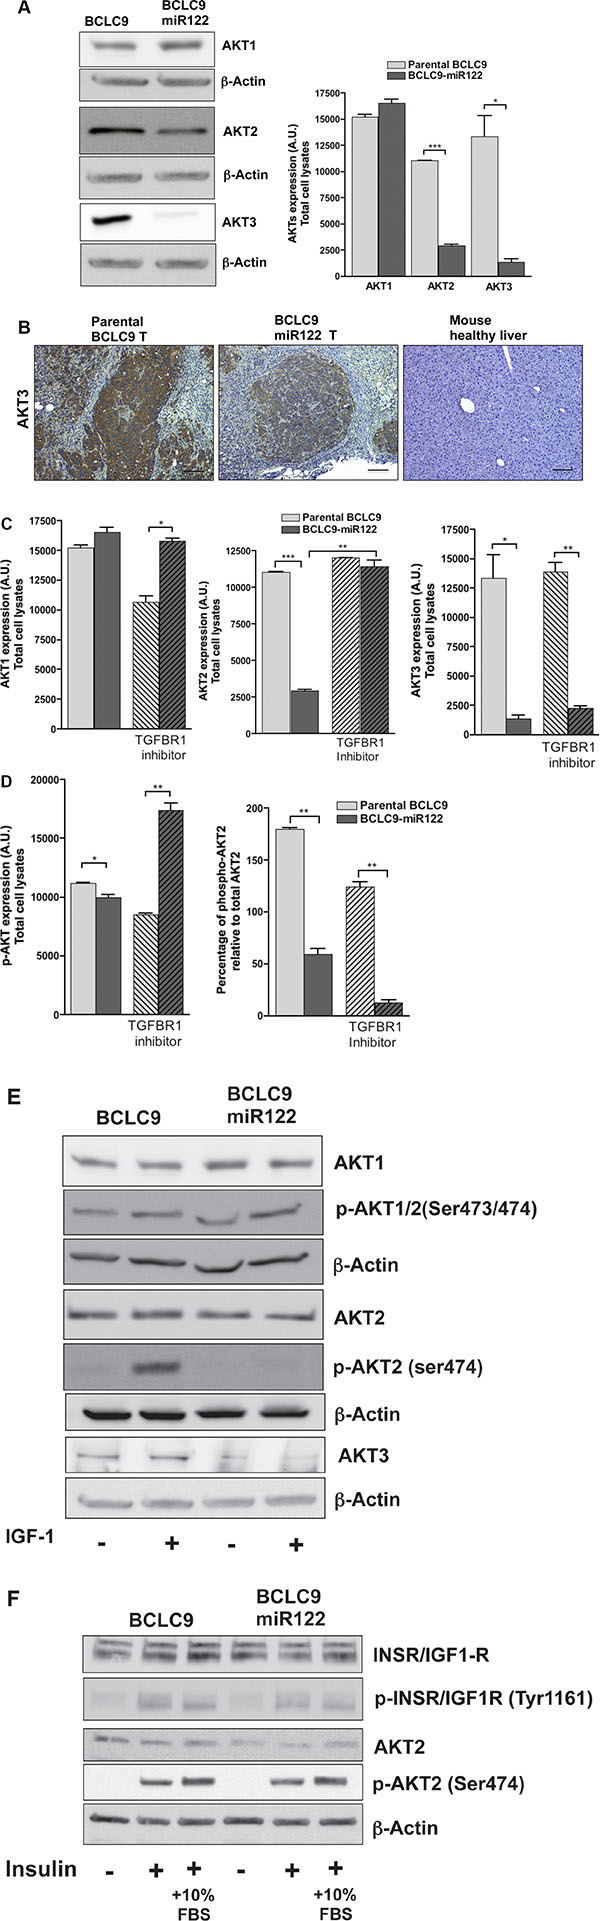 miR122 regulates AKT expression and activation.